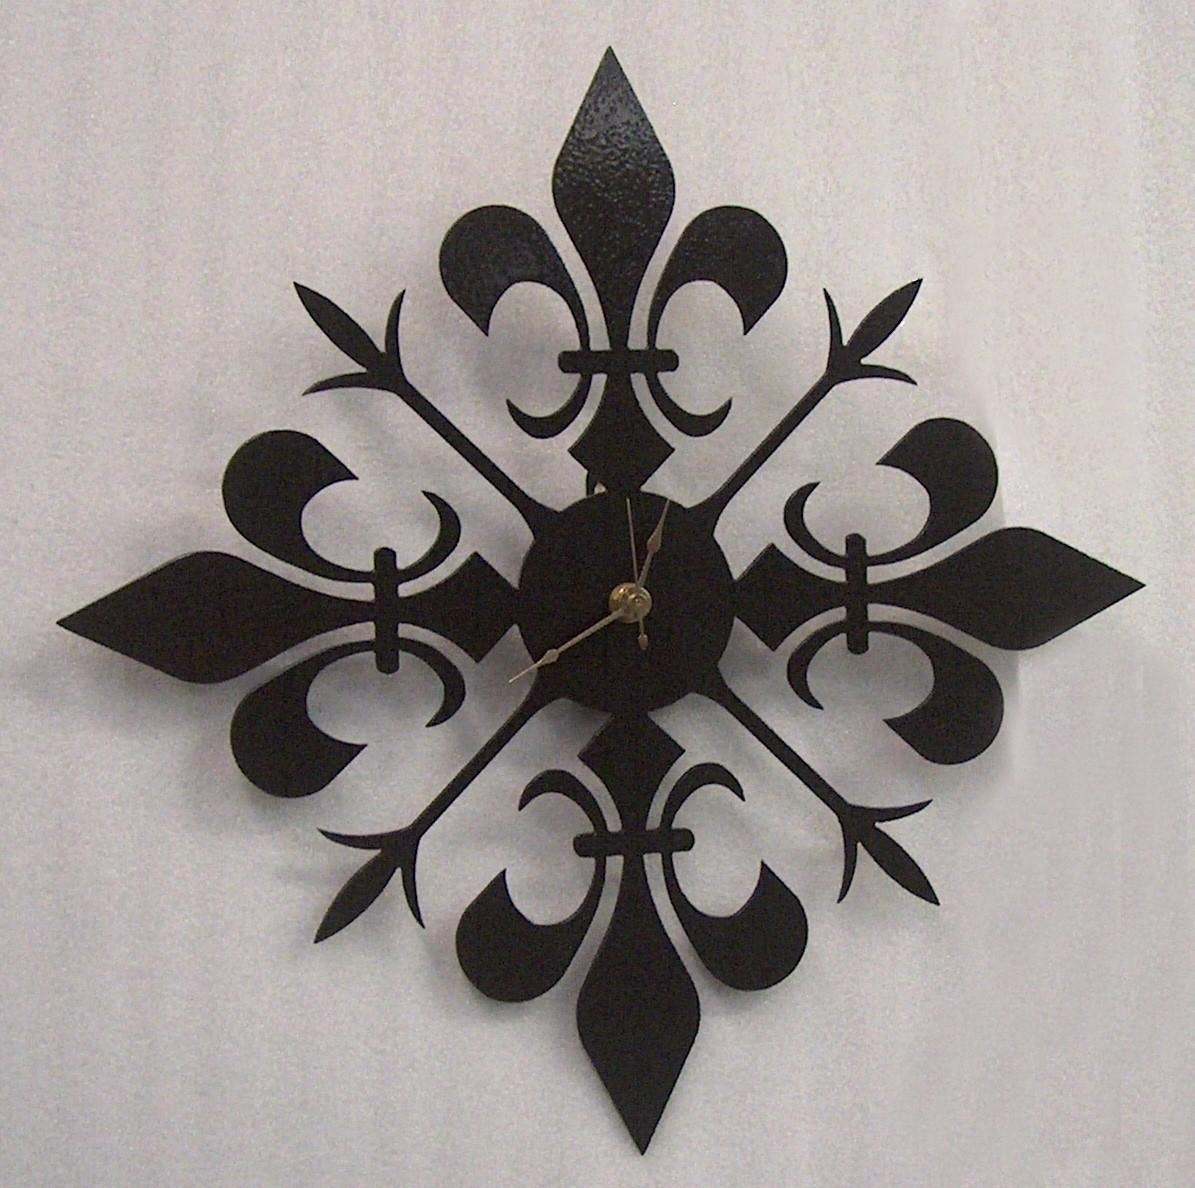 Fleur De Lis Wrought Iron Wall Art : Fleur De Lis Metal Wall Decor With Regard To Fleur De Lis Metal Wall Art (Image 9 of 20)